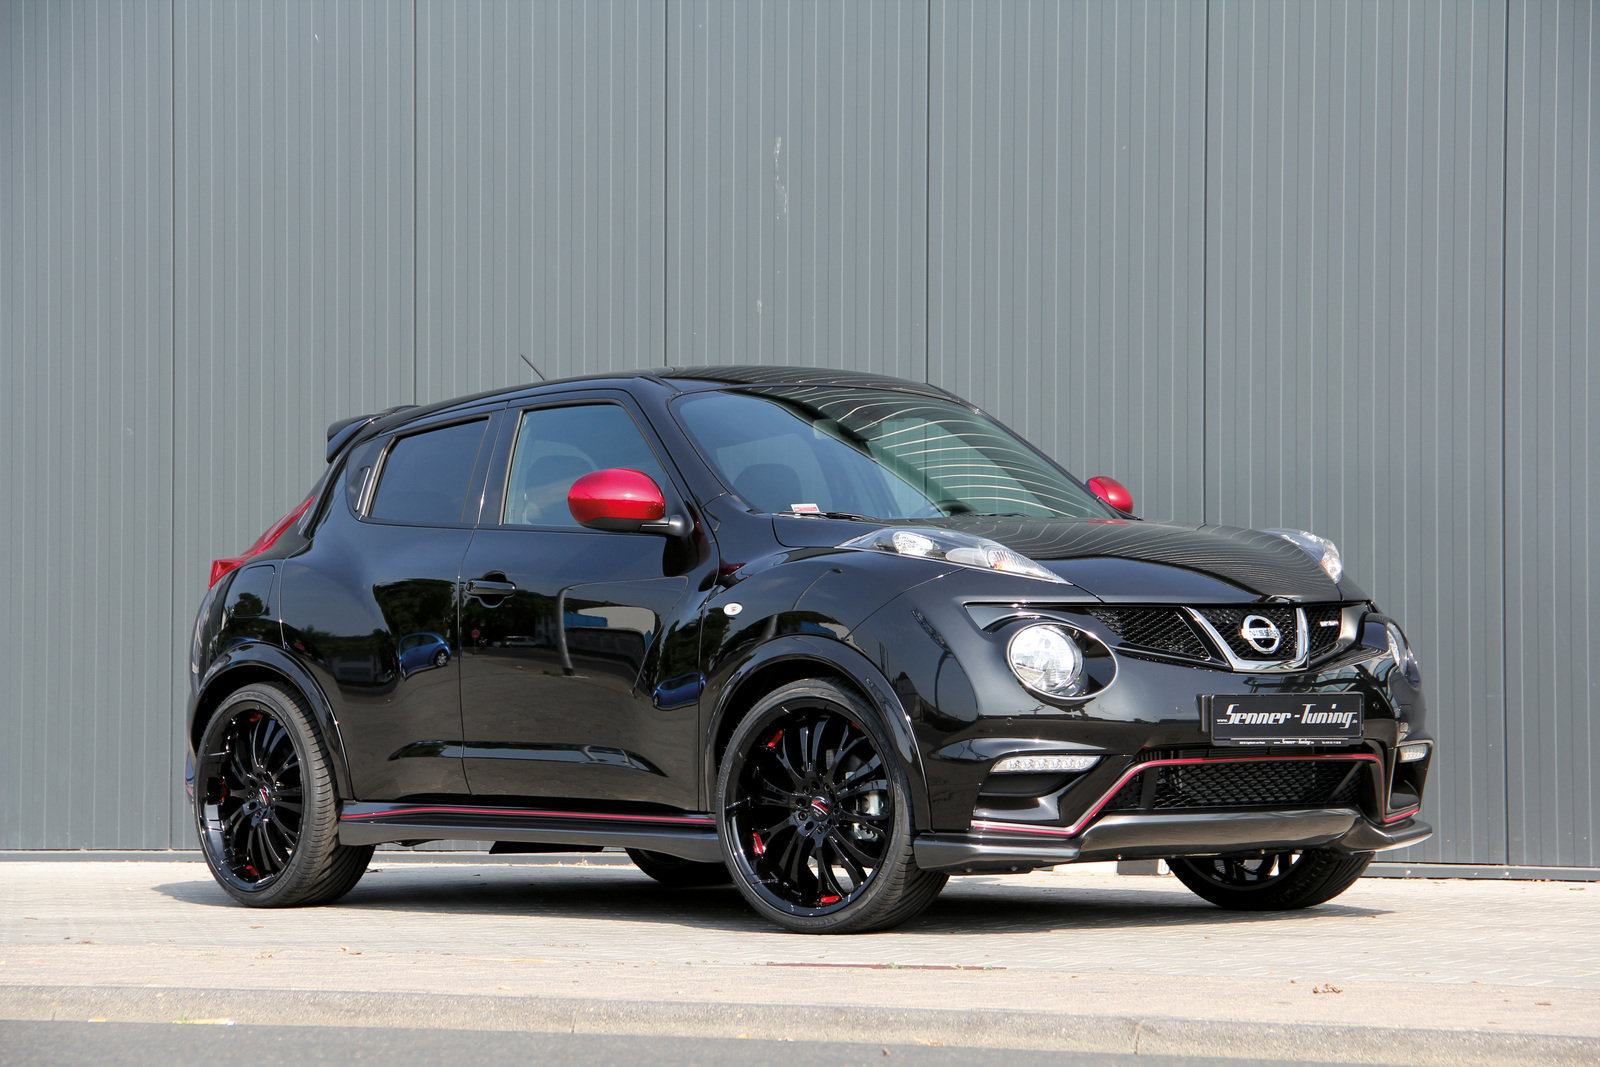 2013 nissan juke nismo by senner tuning review top speed for Nissan juke dauertest